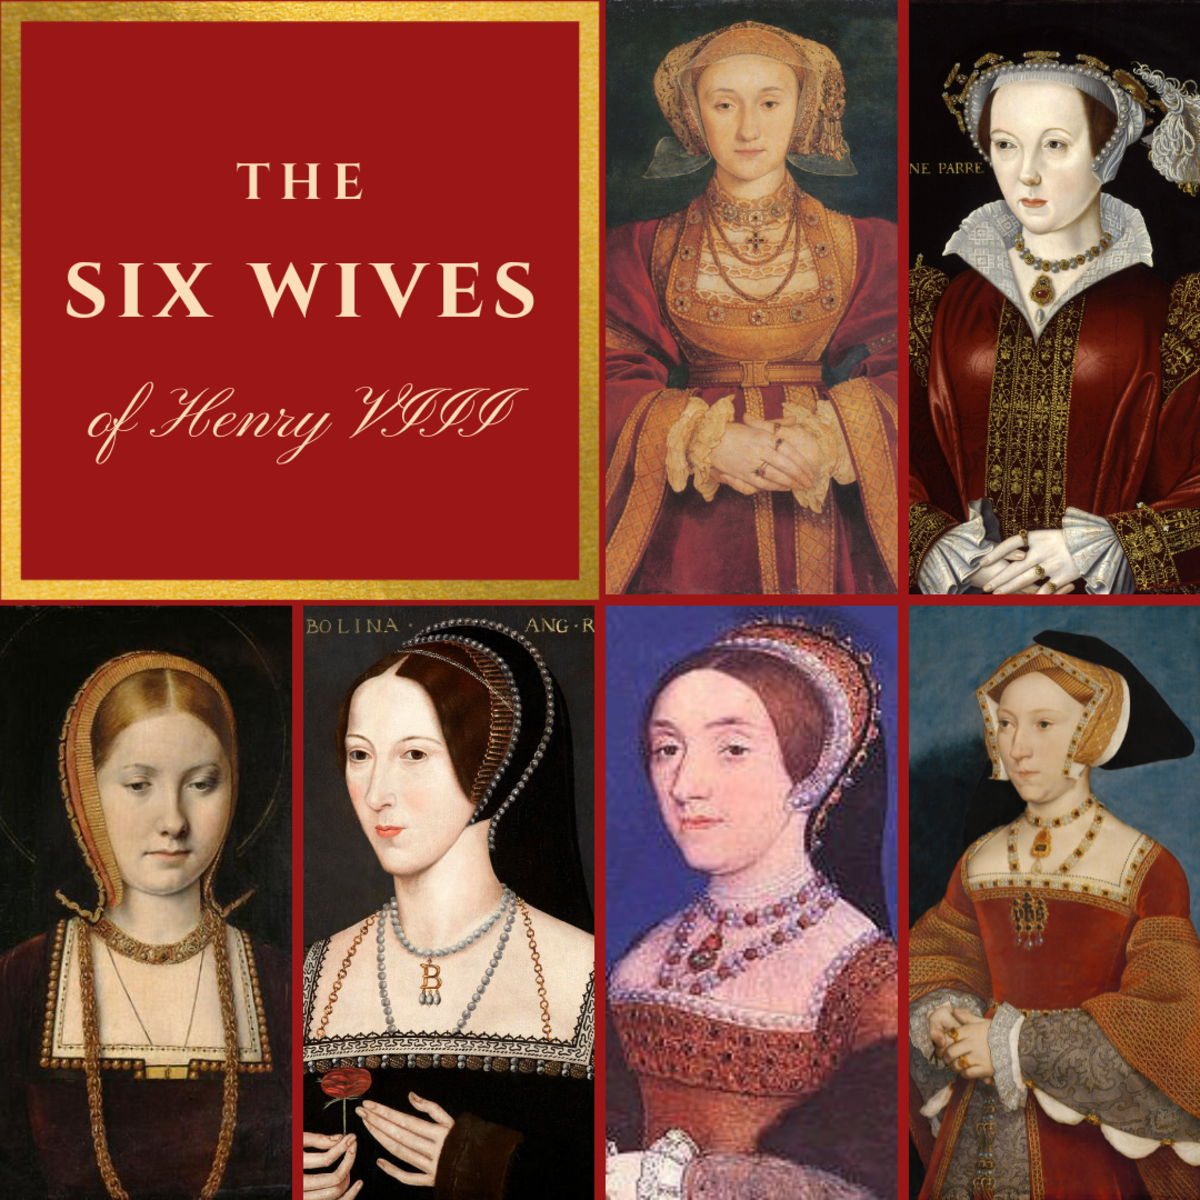 Henry VIII had six queens in, ahem, rapid succession